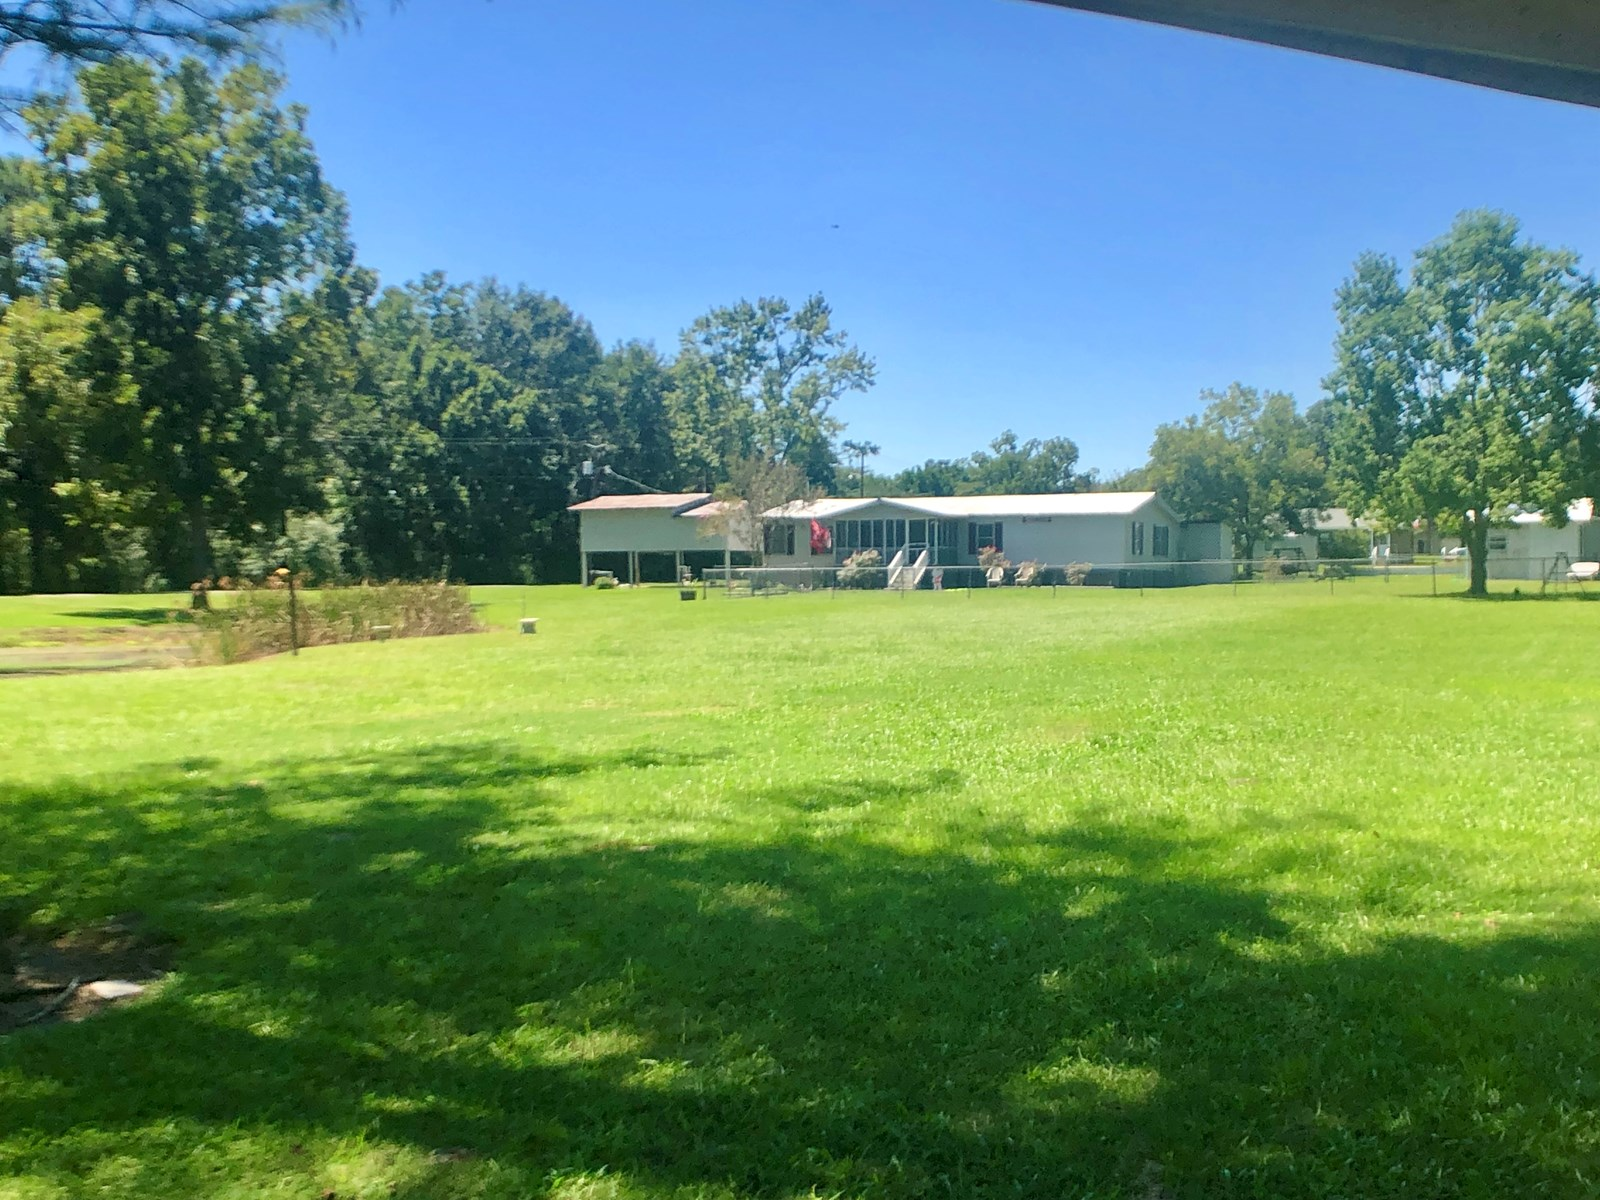 3B/2B Mobile home for sale on 1.5 acres in Slocomb, AL